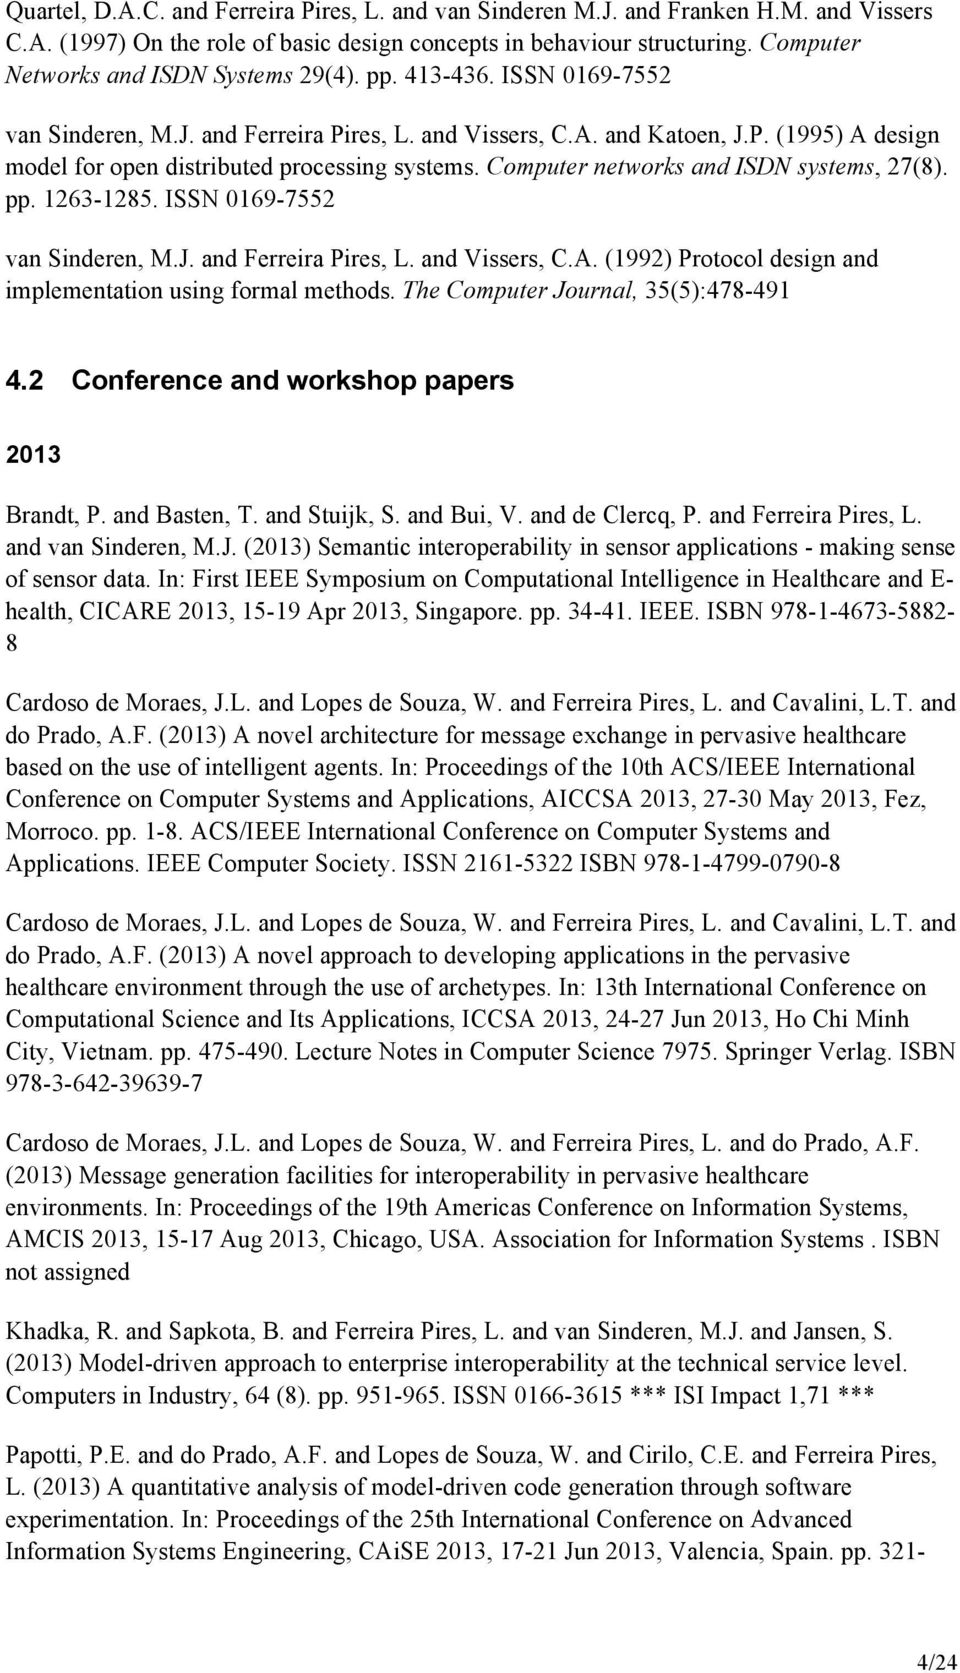 Computer networks and ISDN systems, 27(8). pp. 1263-1285. ISSN 0169-7552 van Sinderen, M.J. and Ferreira Pires, L. and Vissers, C.A. (1992) Protocol design and implementation using formal methods.